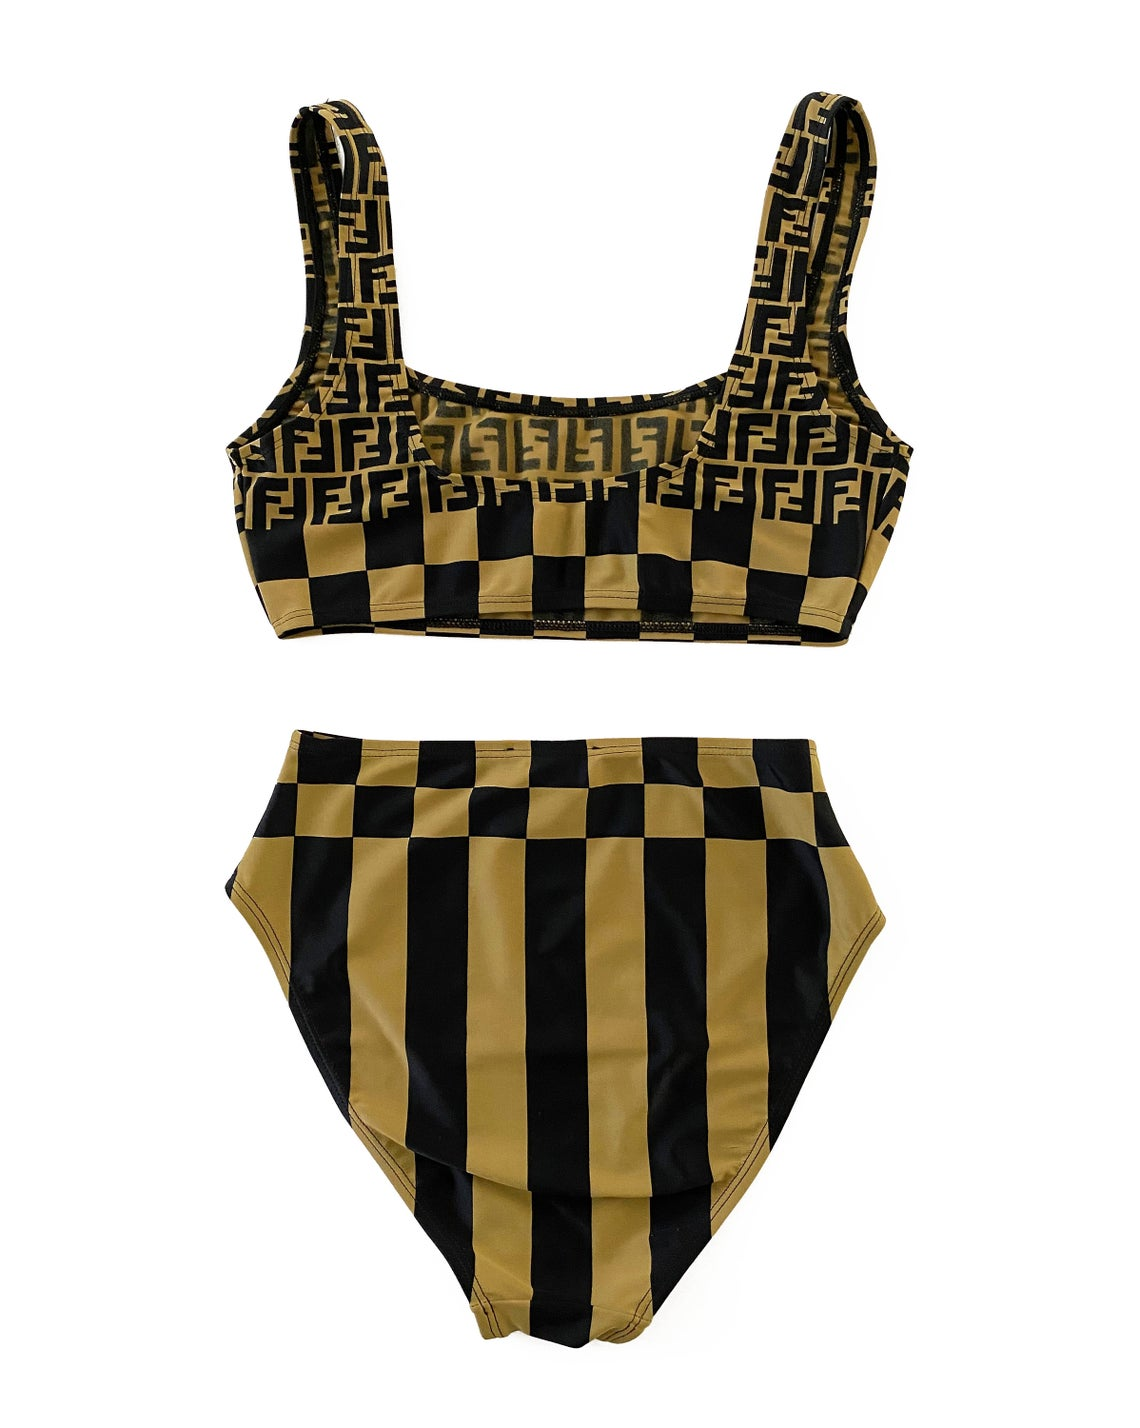 FRUIT Vintage original Fendi Zucca print bikini. This set is a collectors dream and featured in the 1990s Fendi Swimwear campaign. It has a sports style bra top/crop with the iconic Fendi logo monogram and Fendi checkerboard print design and checker board print high waist cut bottoms.